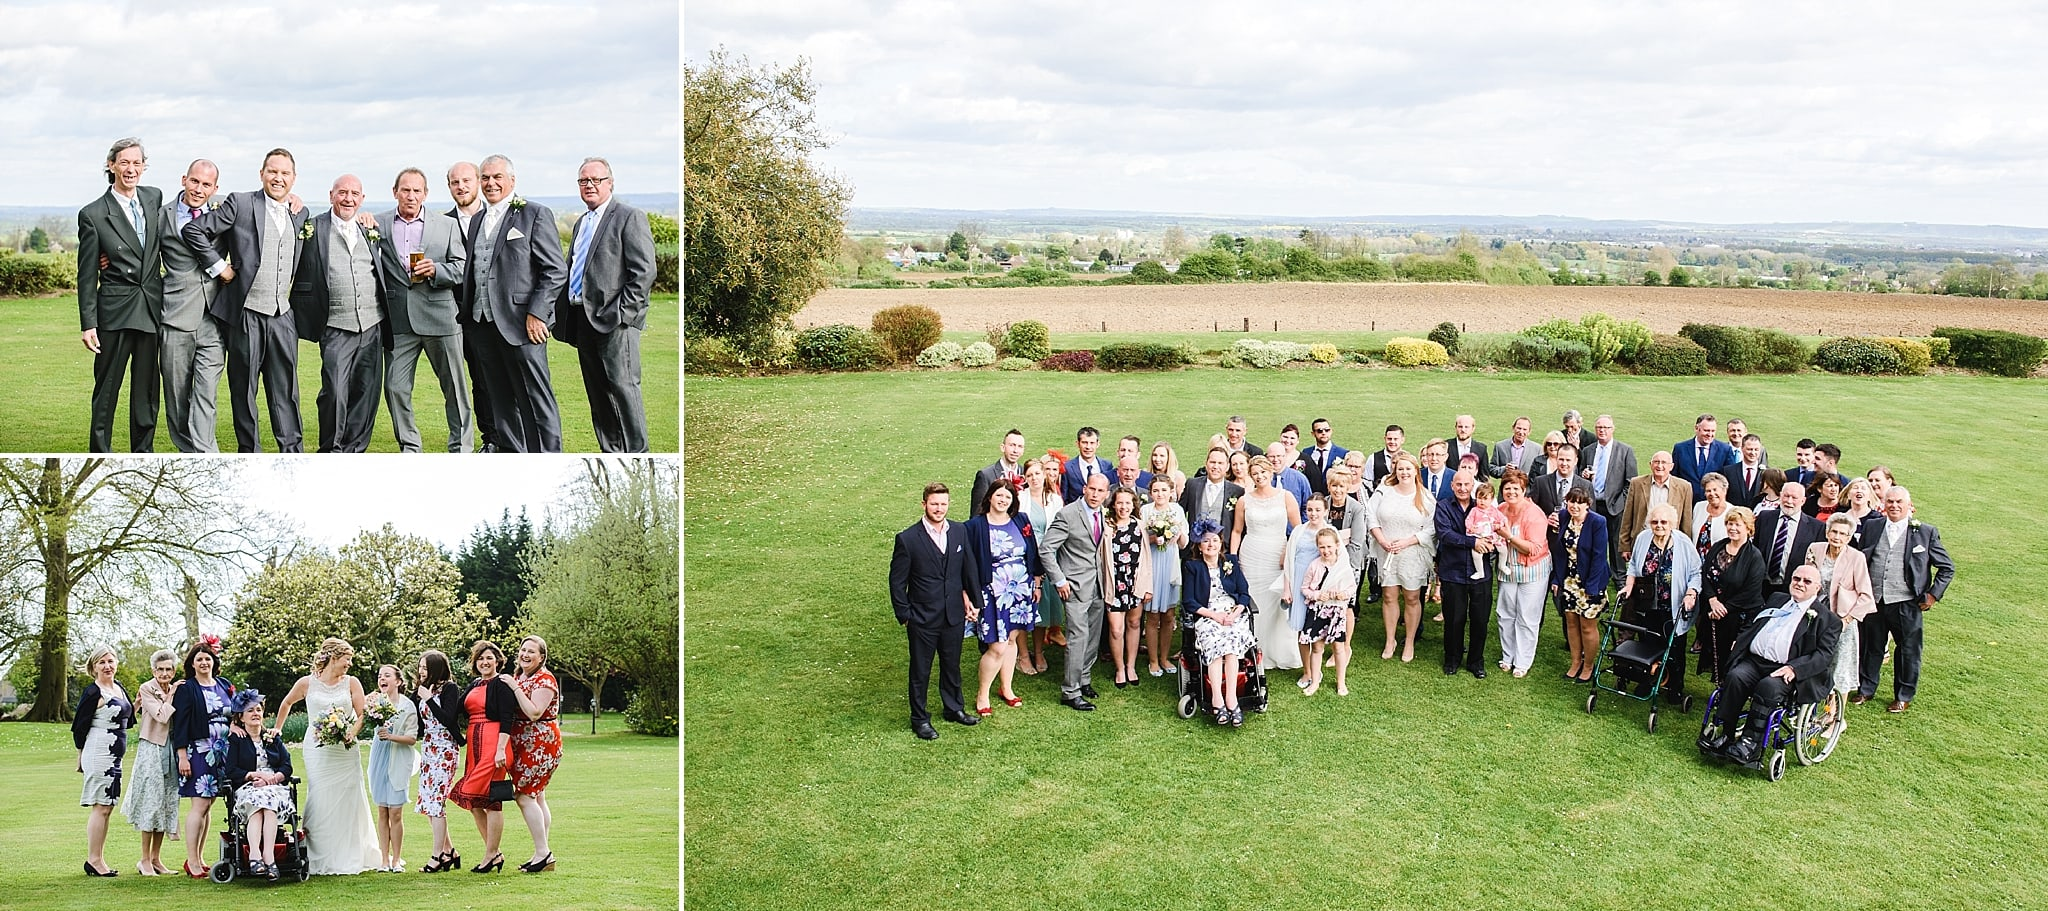 Family photo's on the grass of Leigh Park wedding venue